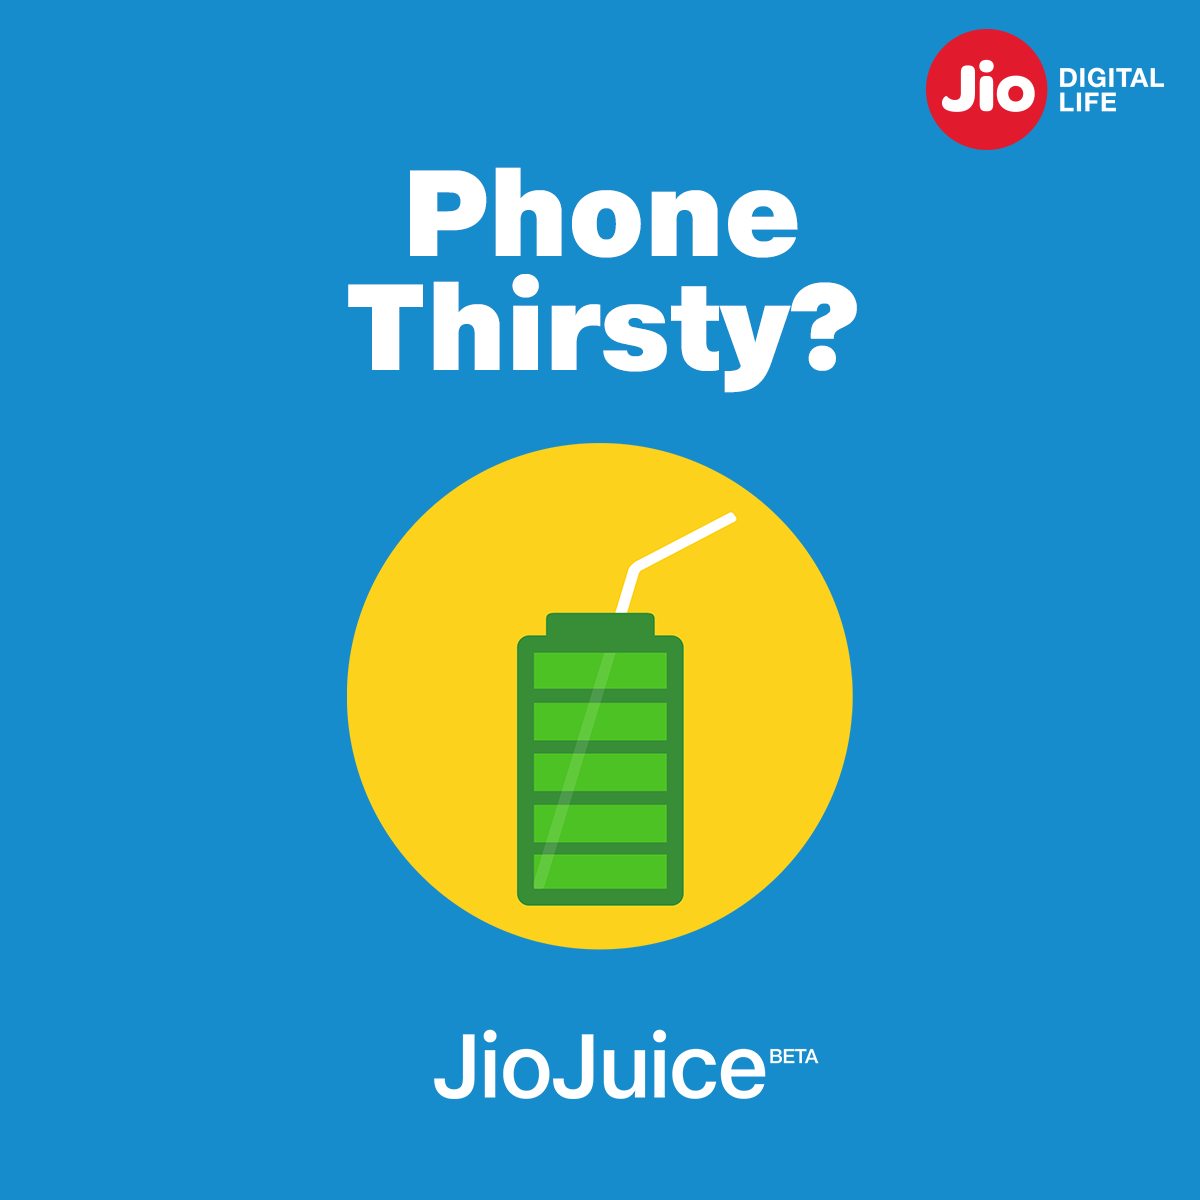 jio juice app download, jio juice